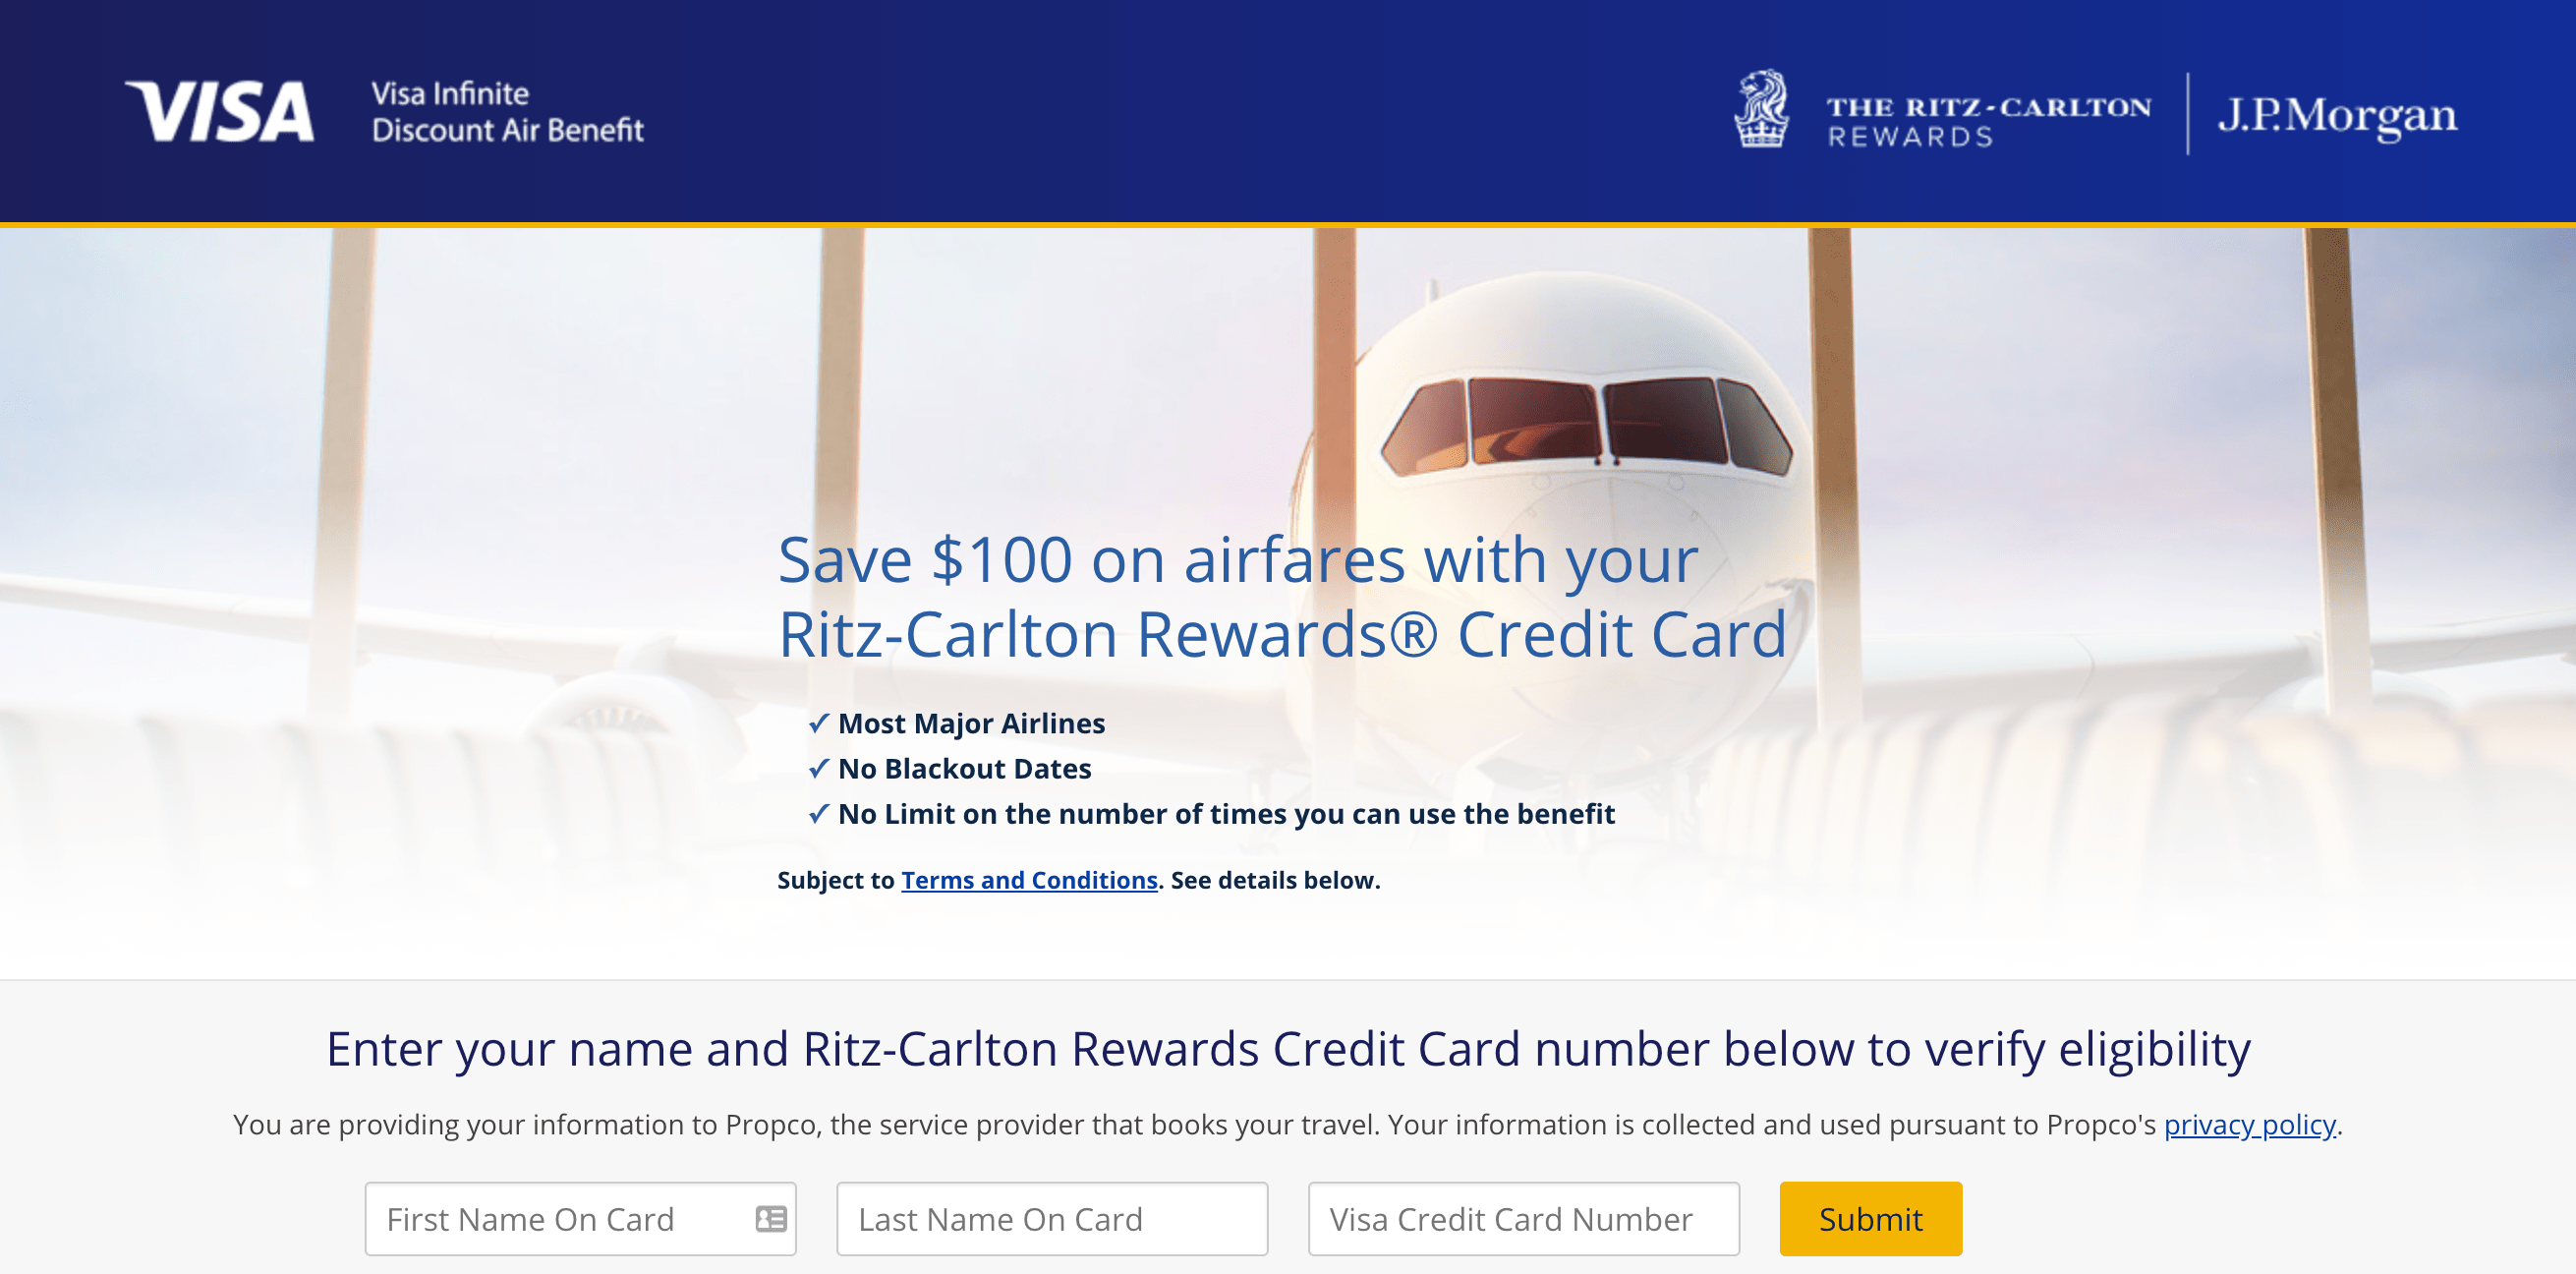 Visa Infinite Discount Air Benefit